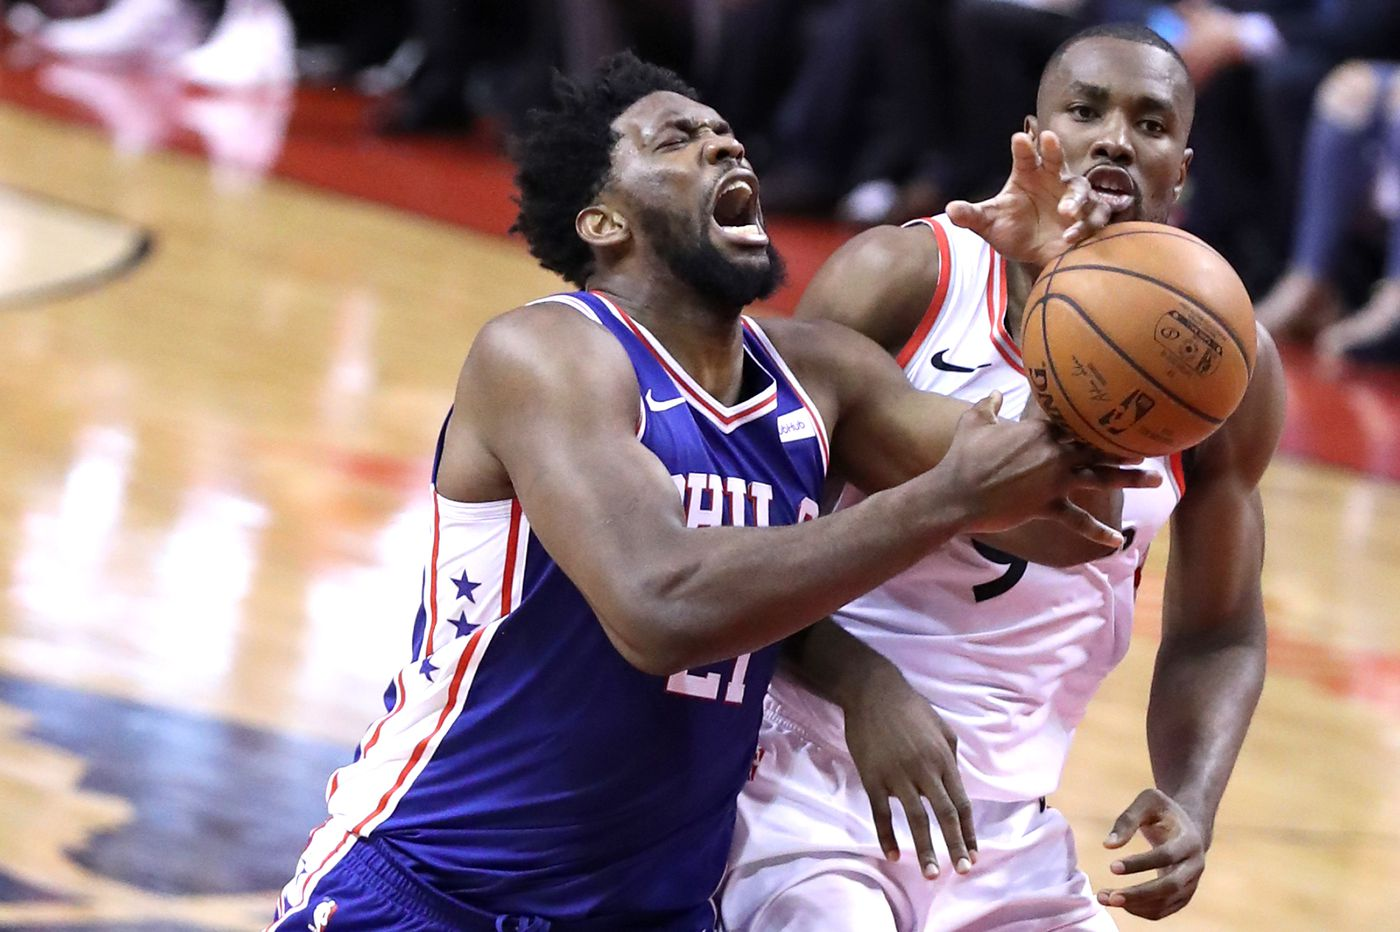 Sixers' Joel Embiid wants to score more against the Raptors but he's not going to force